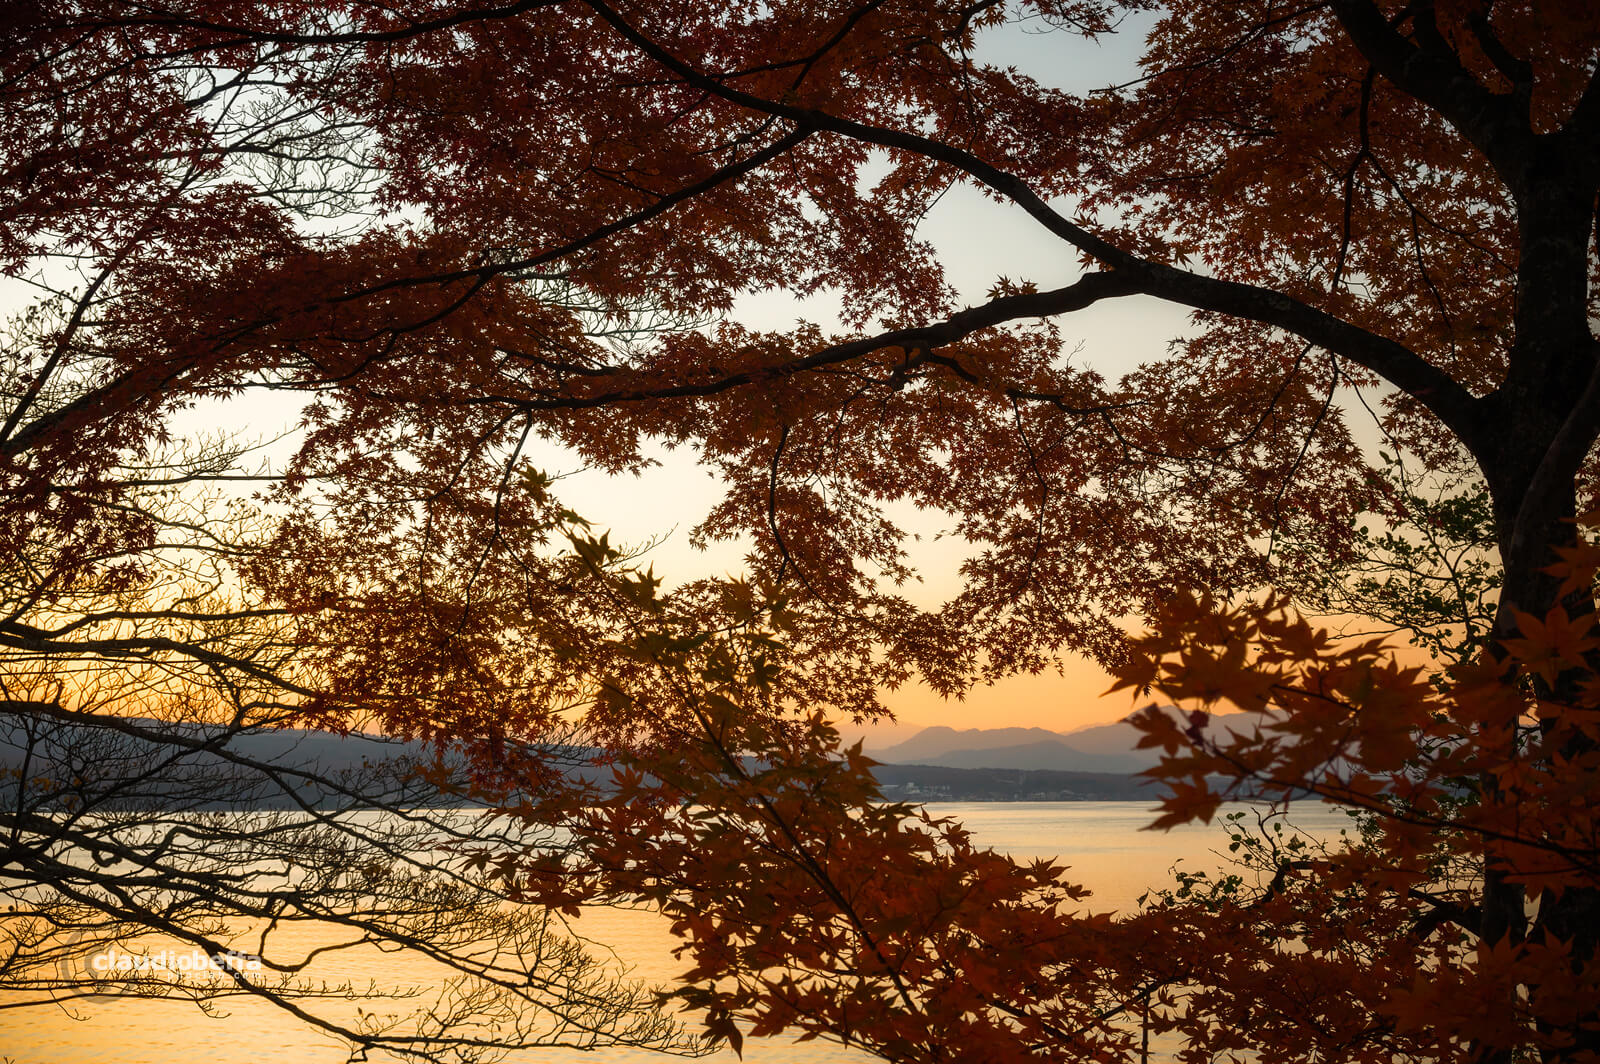 Mount Fuji, Fuji, autumn, fall, Momiji, red, leaves, trees, twilight, lake, lake yamanaka, travel, photography, phoclab